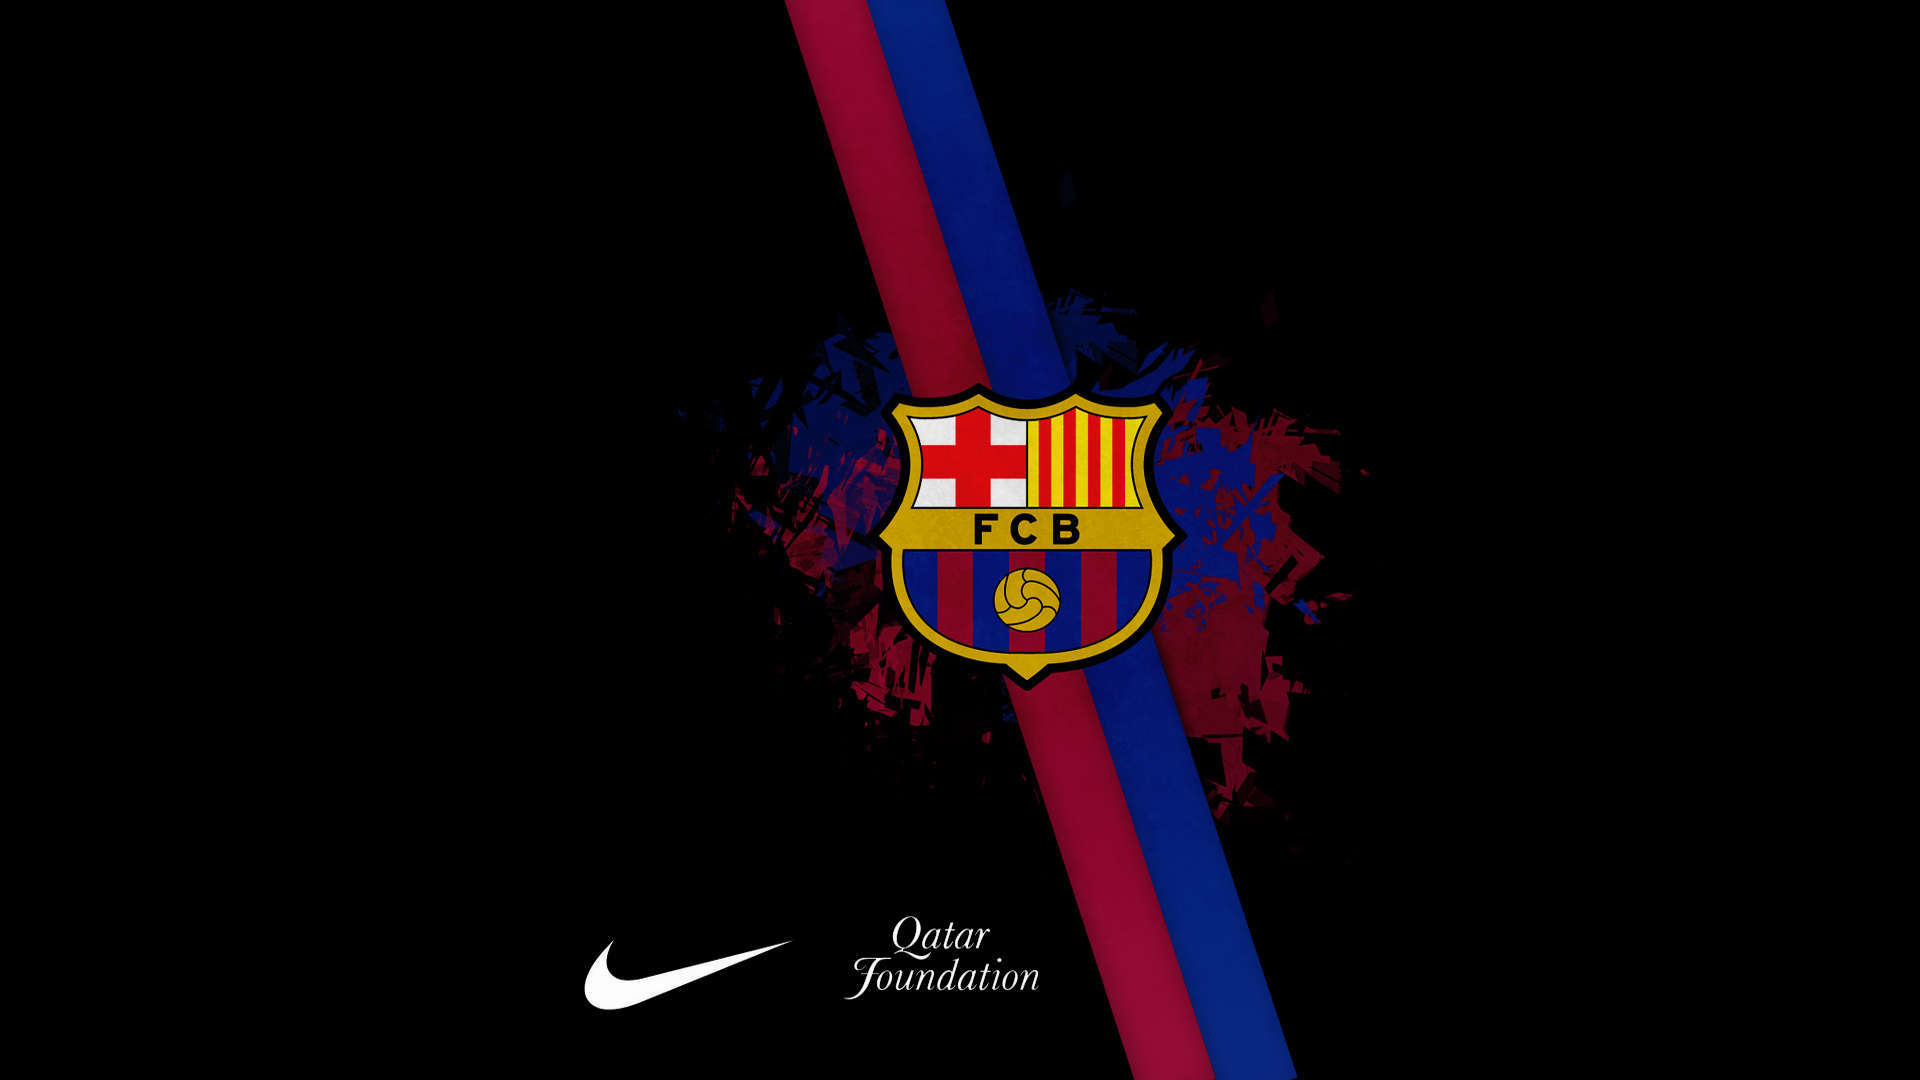 FC Barcelona Logo Wallpaper Download 1920x1080